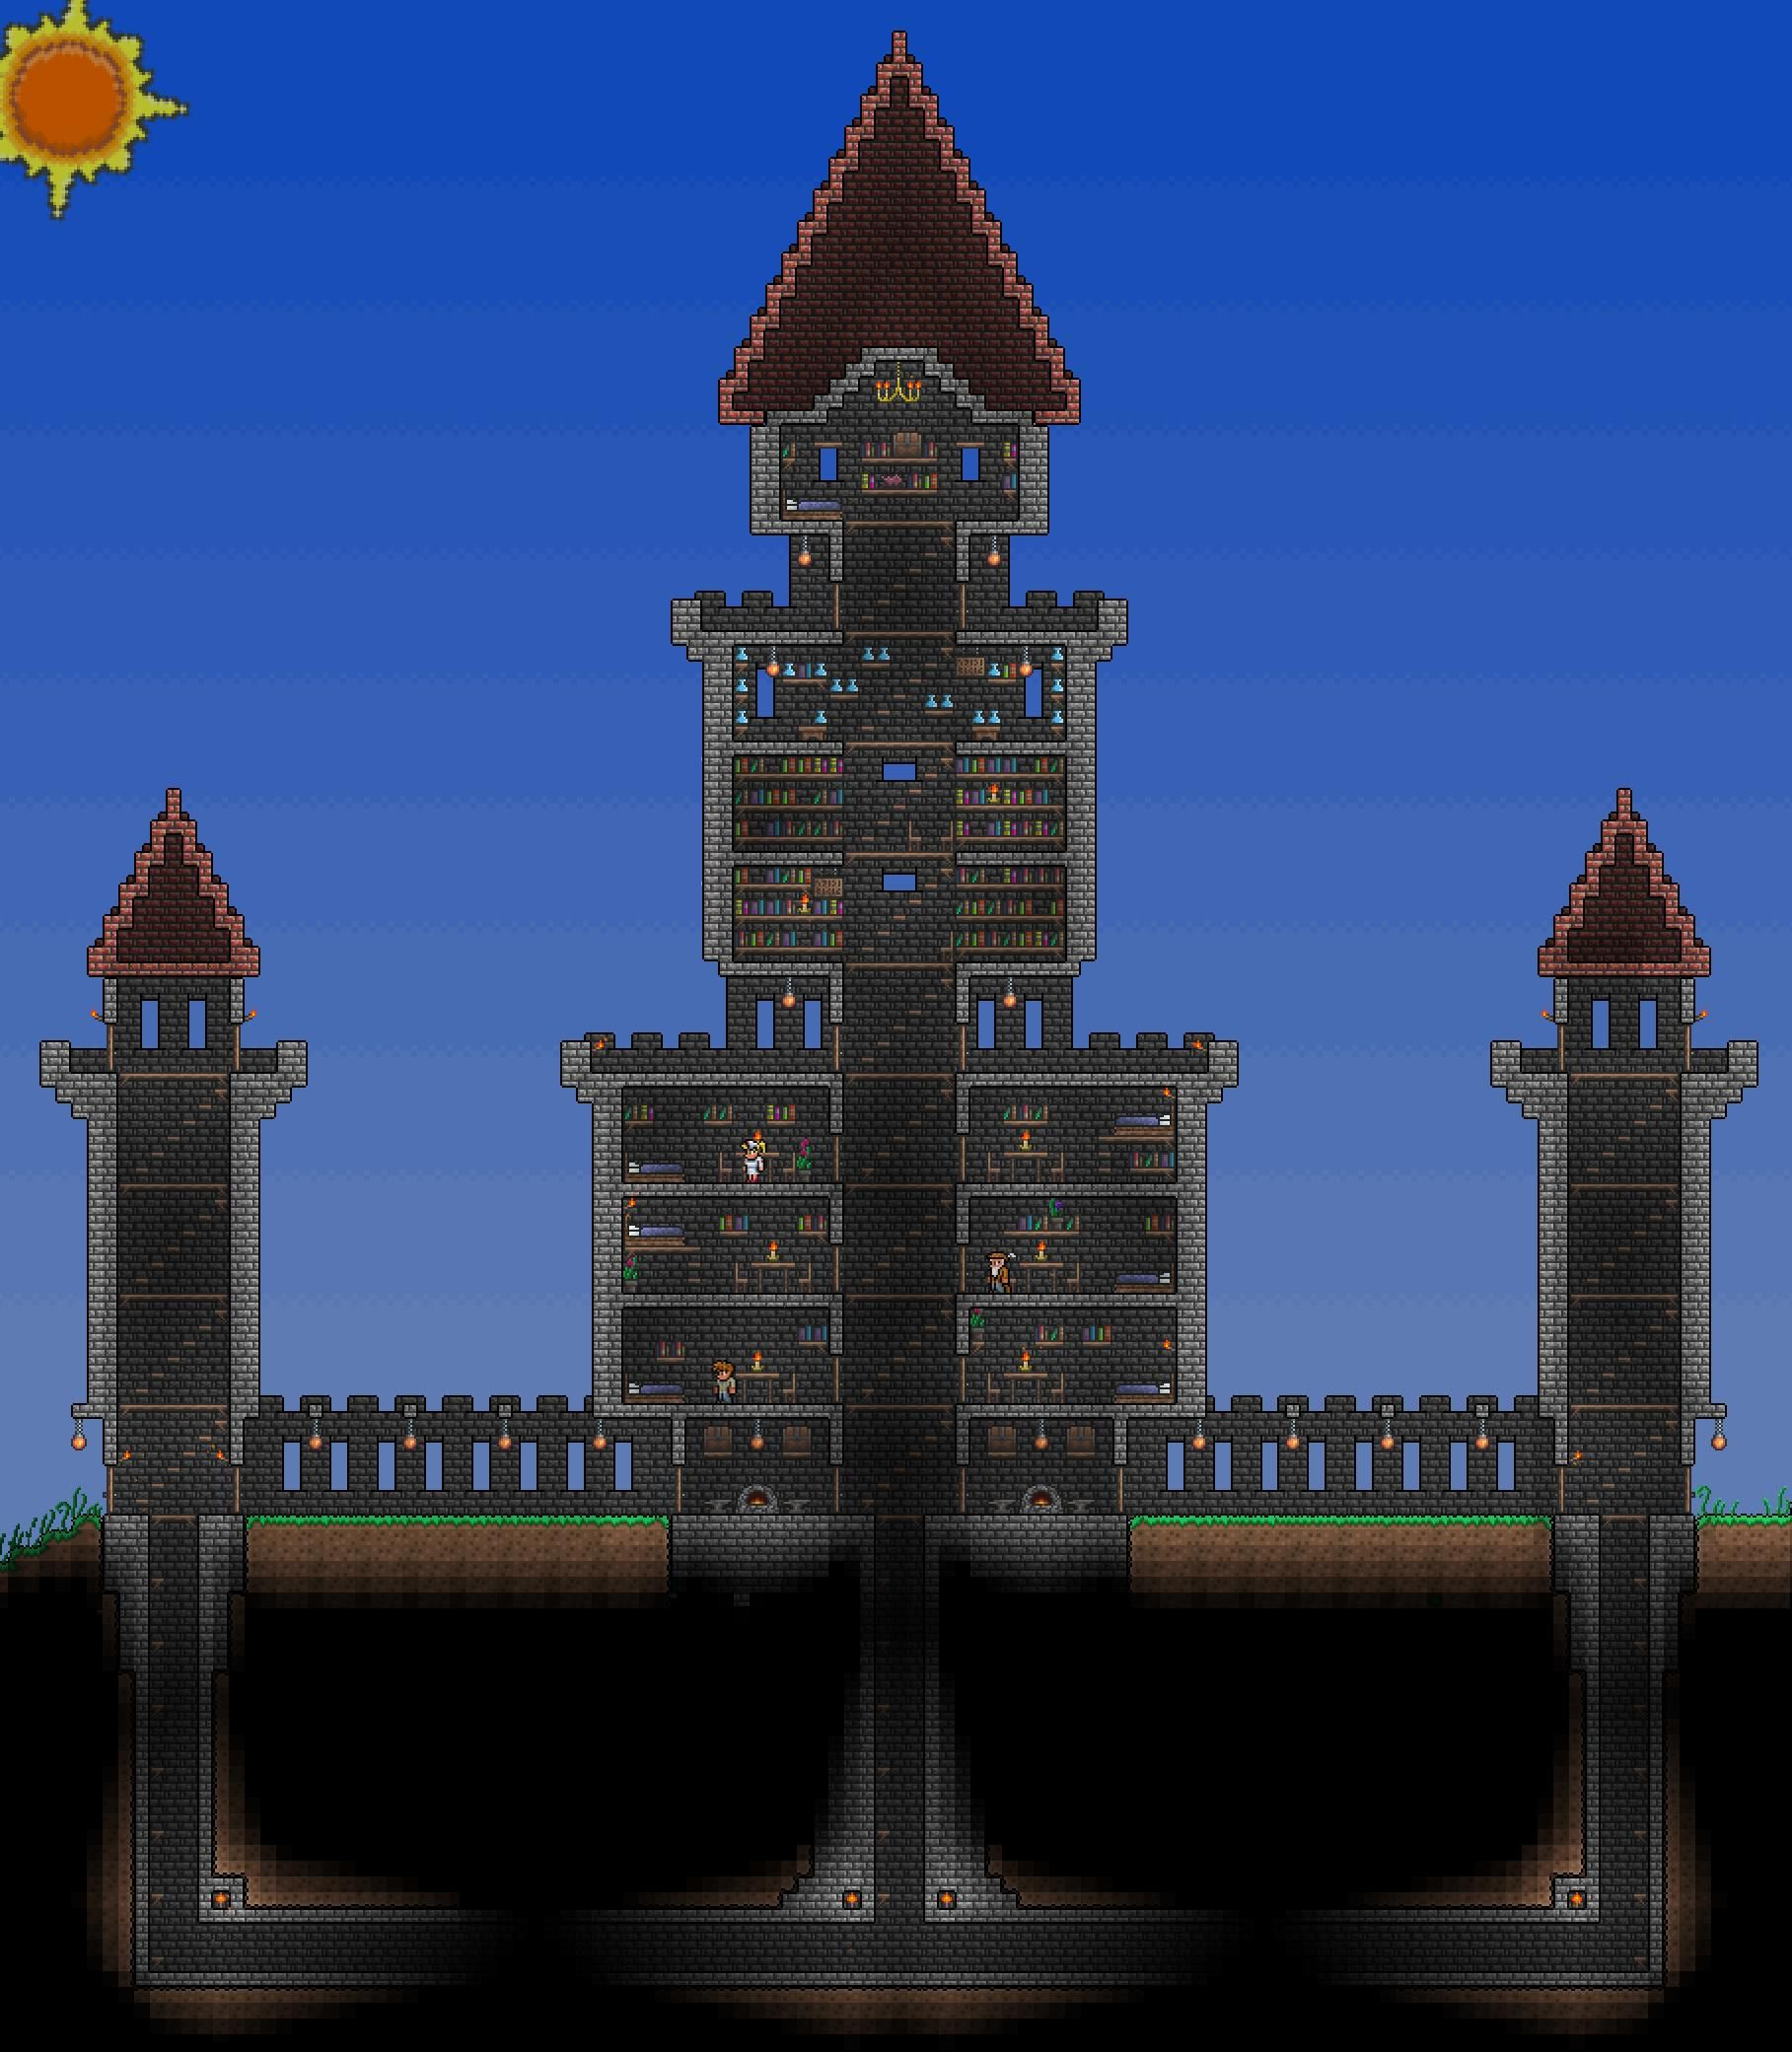 Terraria castle tower castle tower any tips terraria - Terraria Castle Tower Castle Tower Any Tips Terraria 7